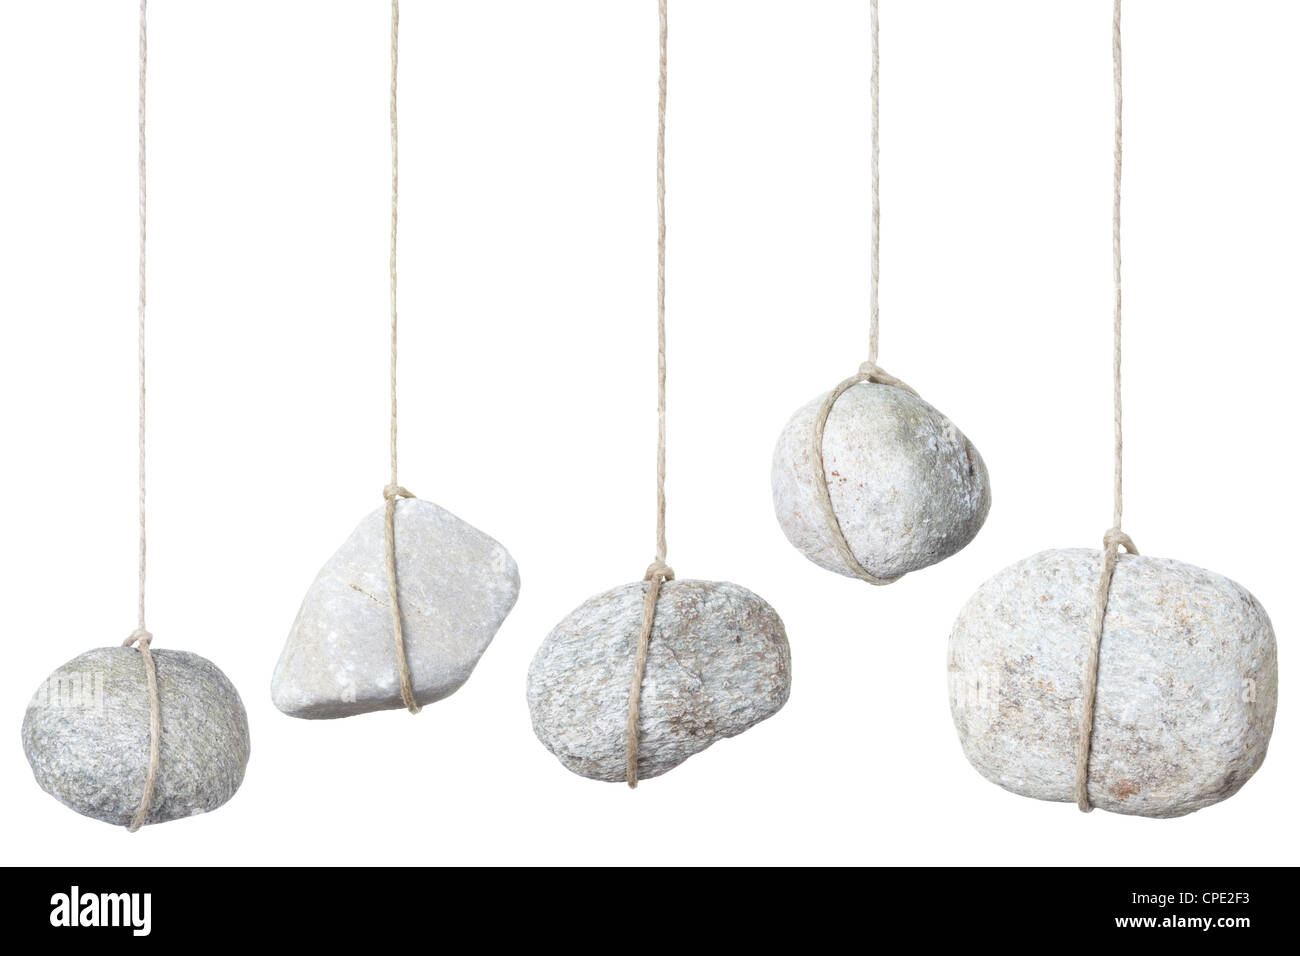 Stone hanging on a string - Stock Image